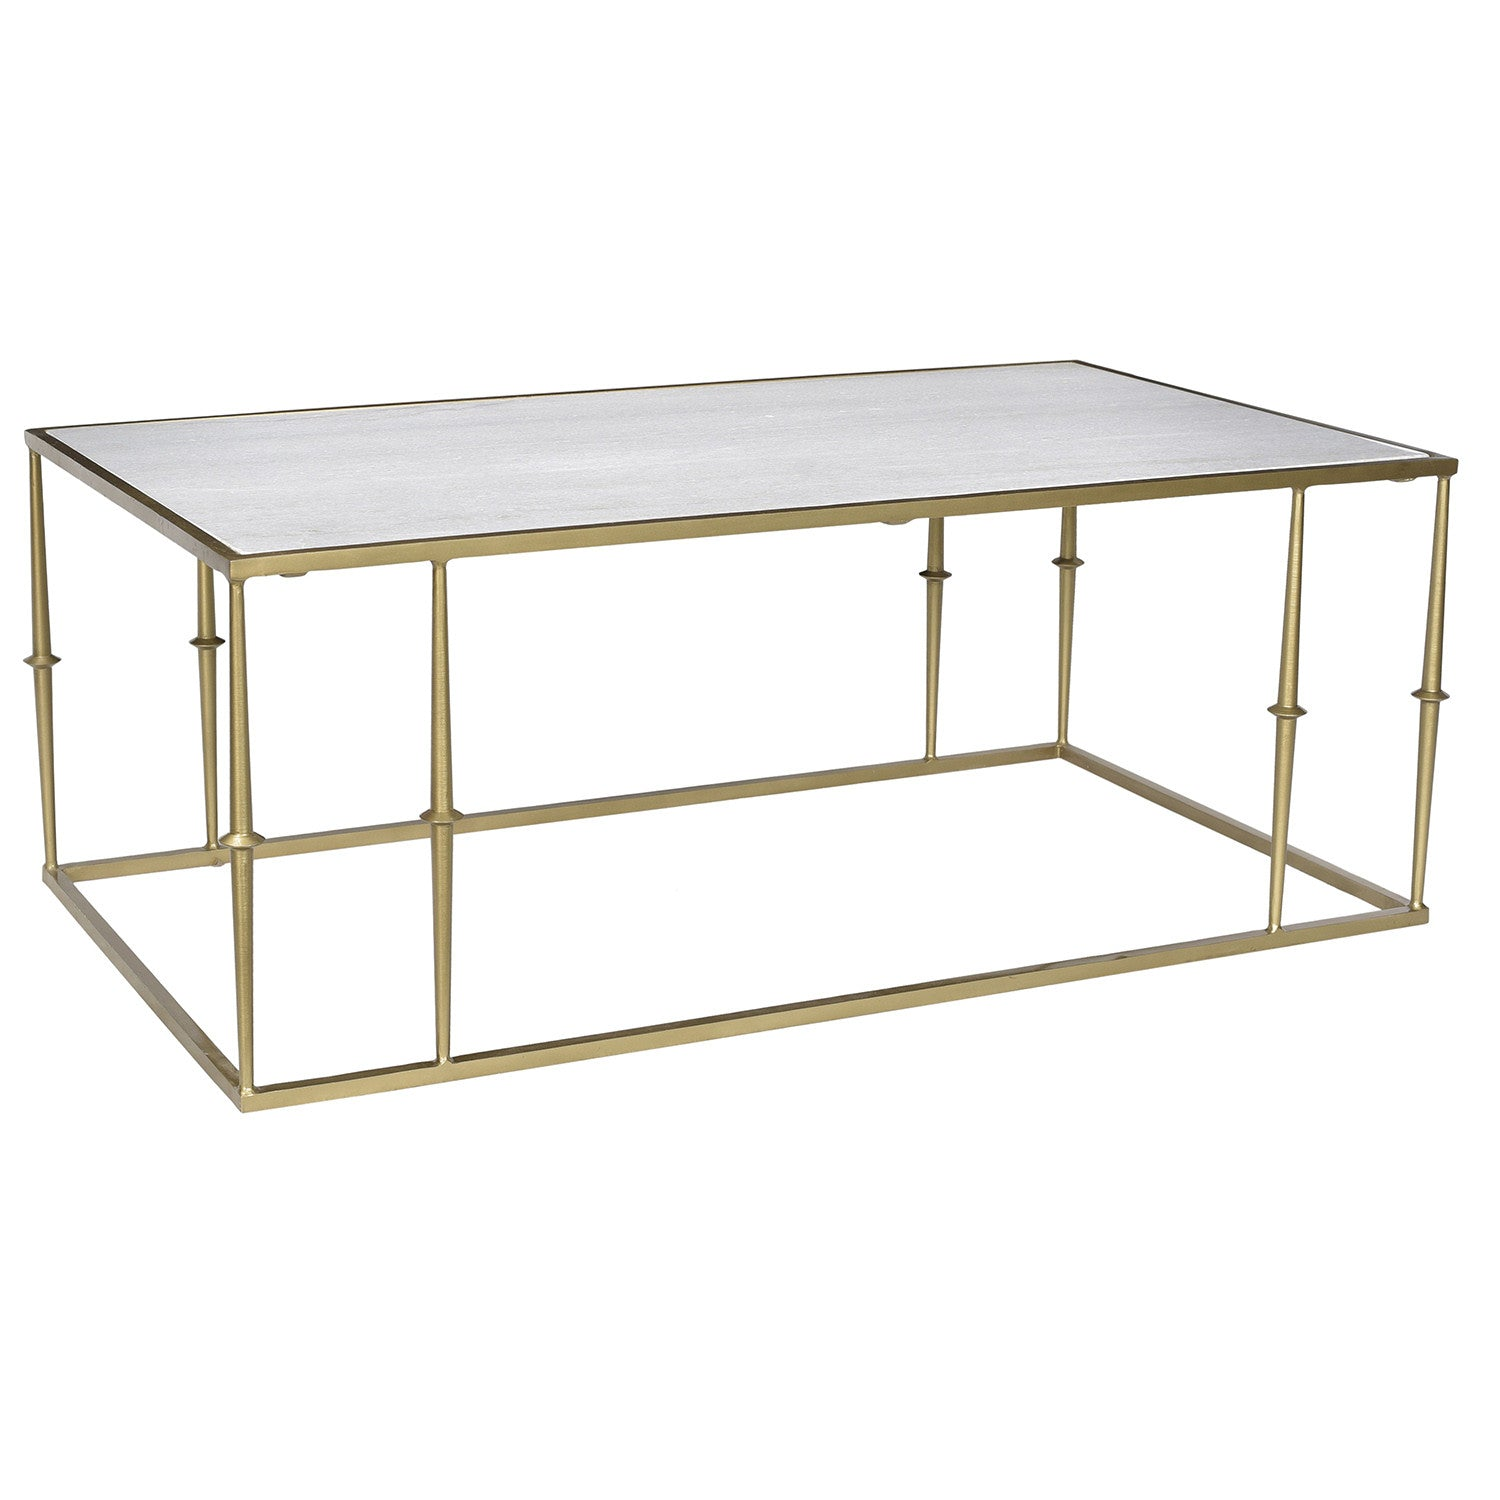 Exceptionnel Mechelen Iron U0026 Marble Coffee Table, Brass